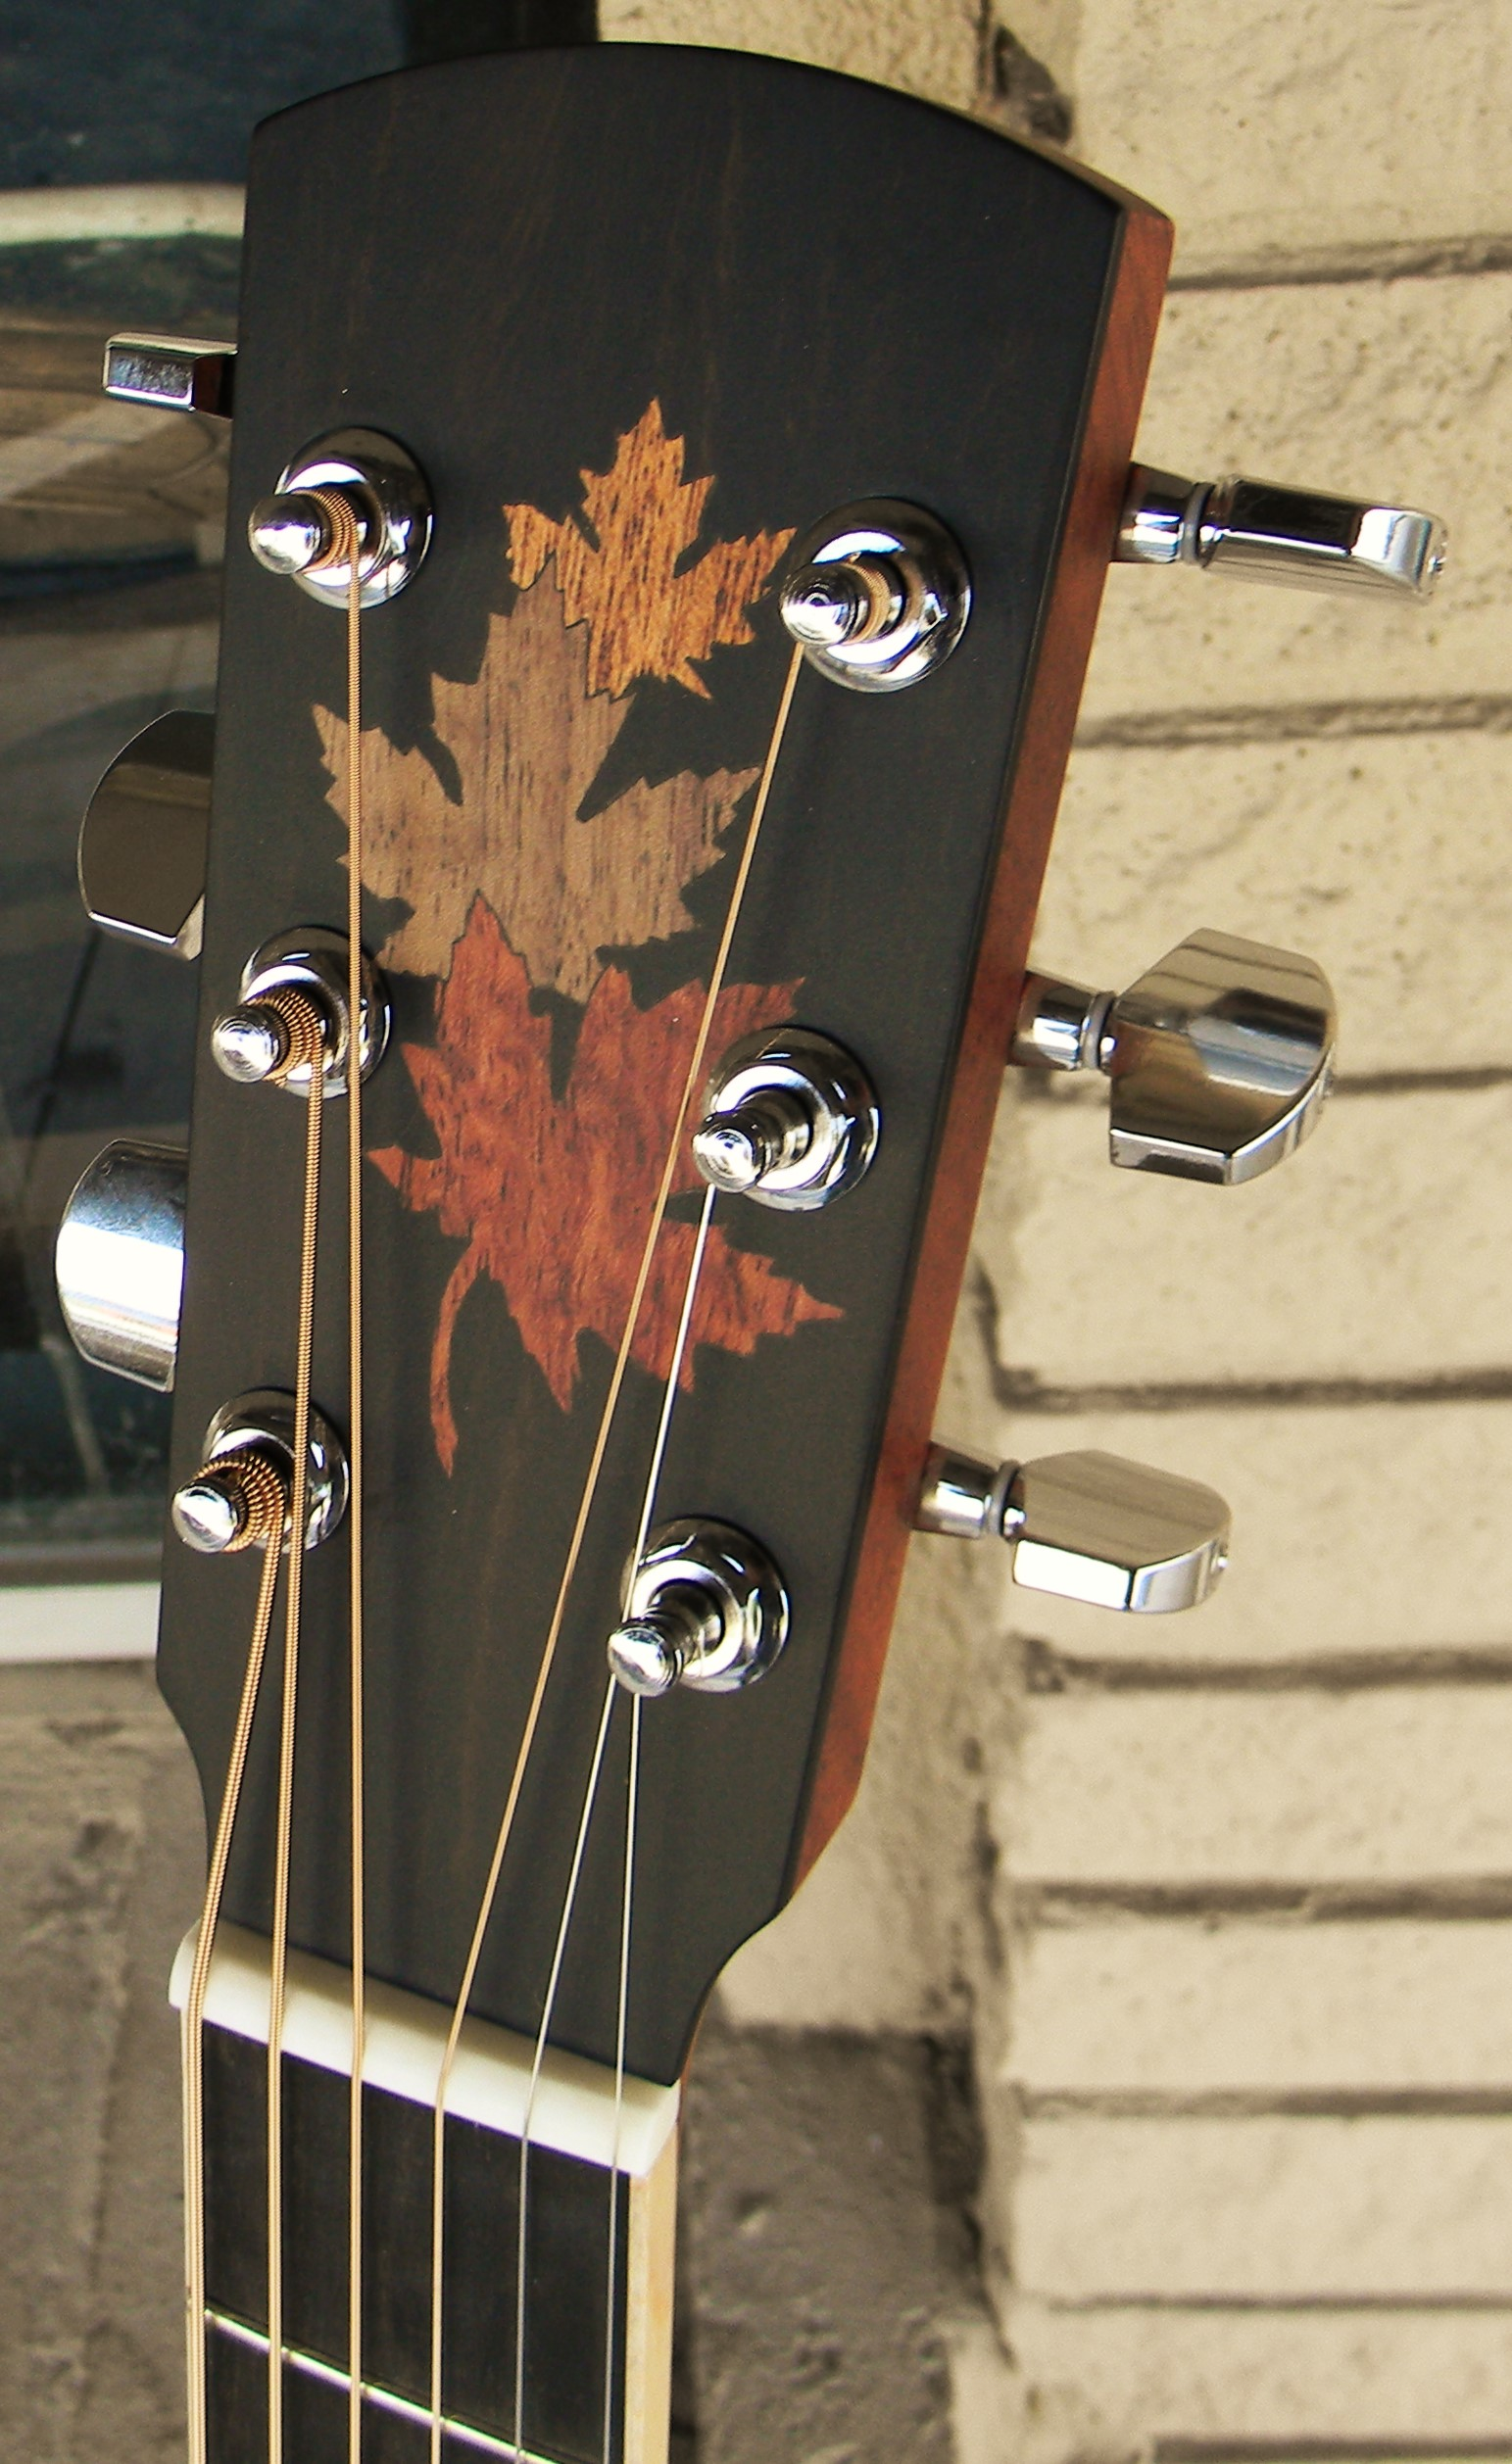 The Larrivee L03FM from their Custom Shop features stunning flamed maple back and sides, an abalone rosette, and lovely maple leaf inlays to pay homage to Larrivee's Canadian heritage, a;though today's Larrivee Guitars are made in Oxnard, California. This wonderful guitar defies the common perception of maple as being a sometimes overly bright sounding. It sounds rich and warm, plays like a dream and looks lovely. $1759.00